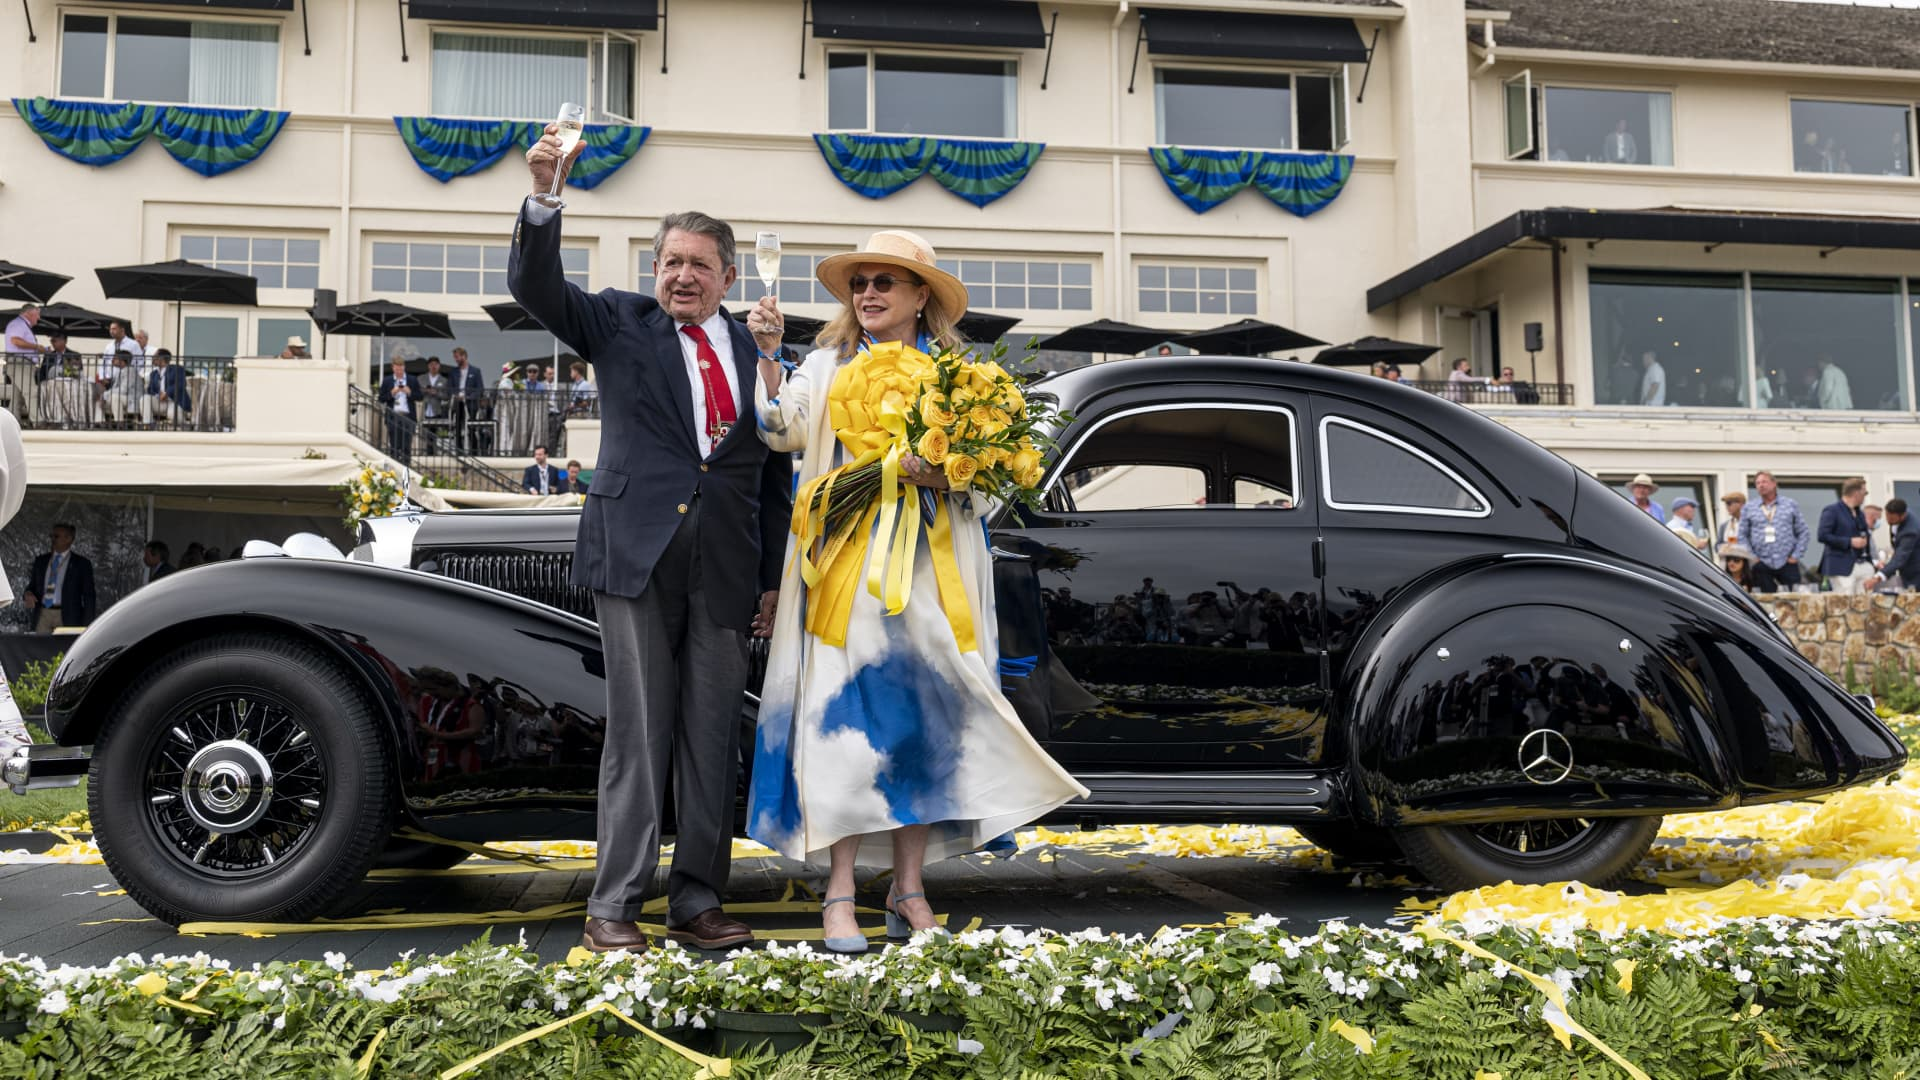 Arturo and Deborah Keller celebrate after winning the Best of Show award with their 1938 Mercedes-Benz 540K Autobahn Kurier at the 2021 Pebble Beach Concours d'Elegance in Pebble Beach, California, U.S., on Sunday, Aug. 15, 2021.